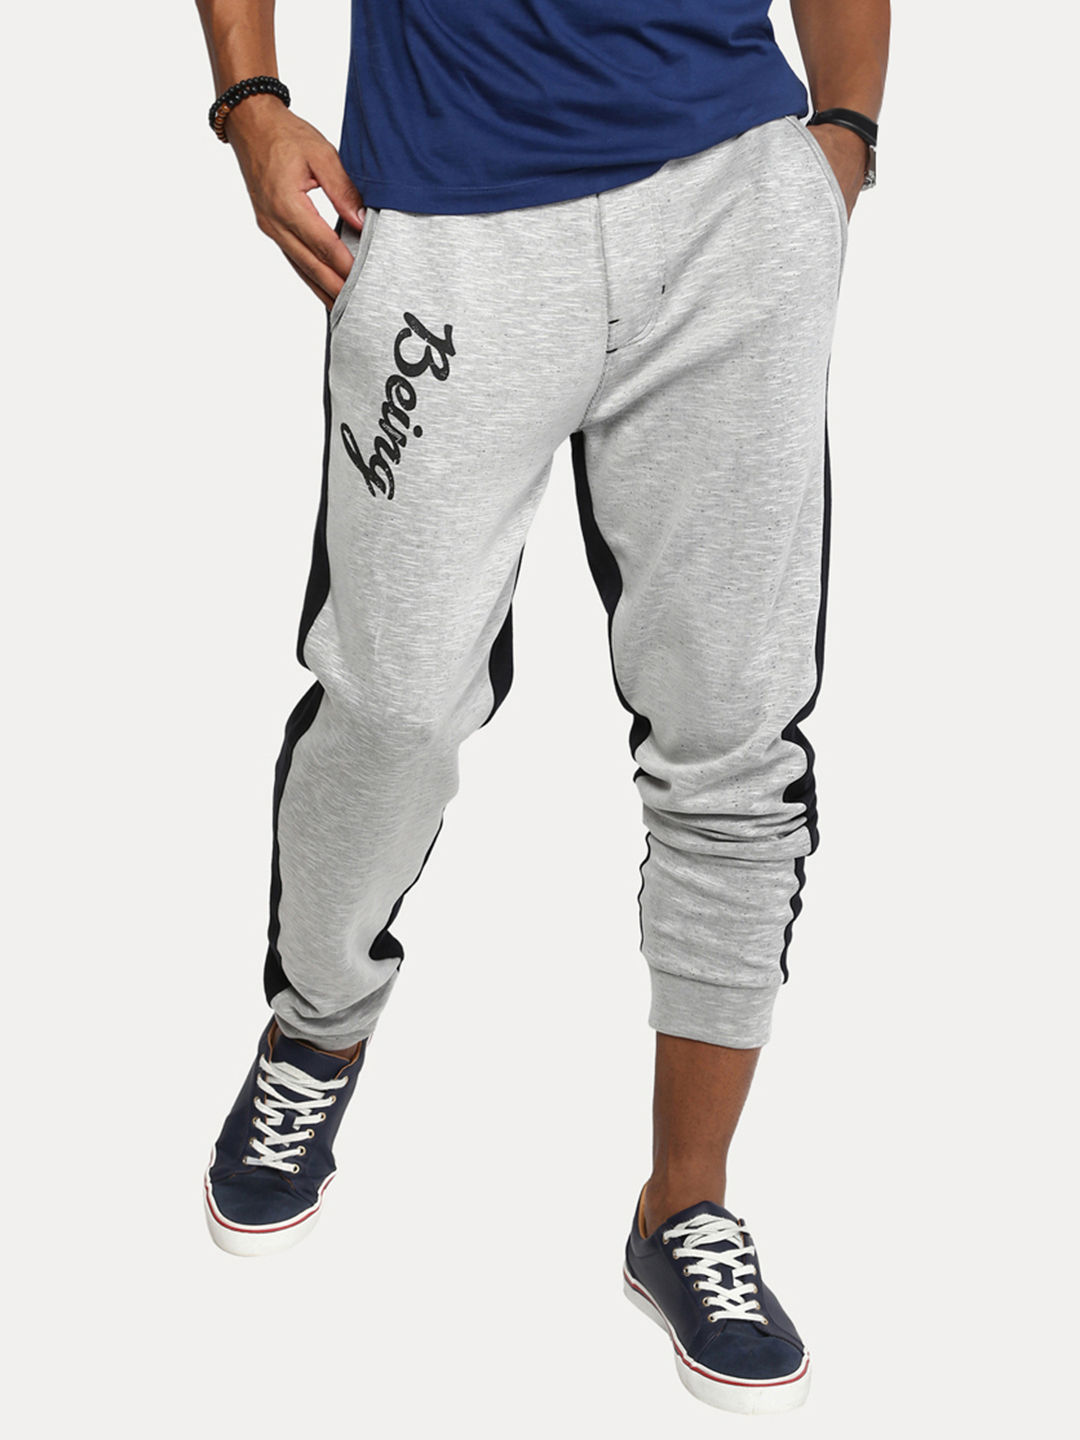 ECRU AND BLACK MELANGE JOGGERS